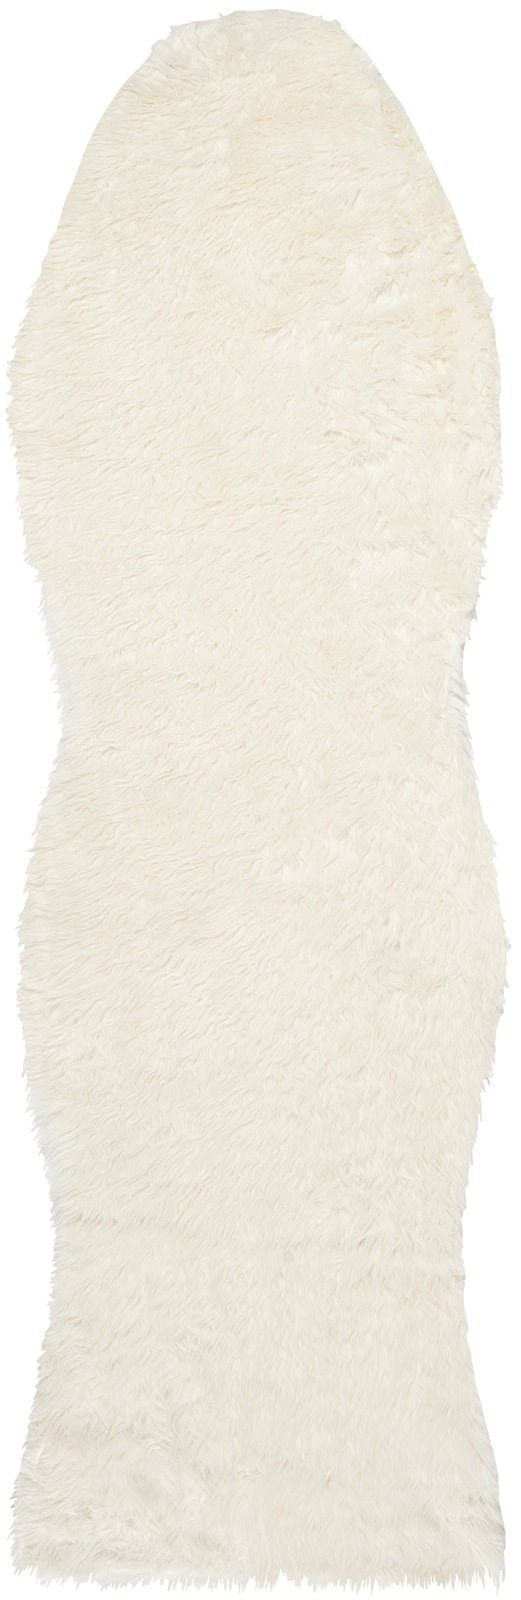 safavieh faux sheep skin animal inspirations area rug collection